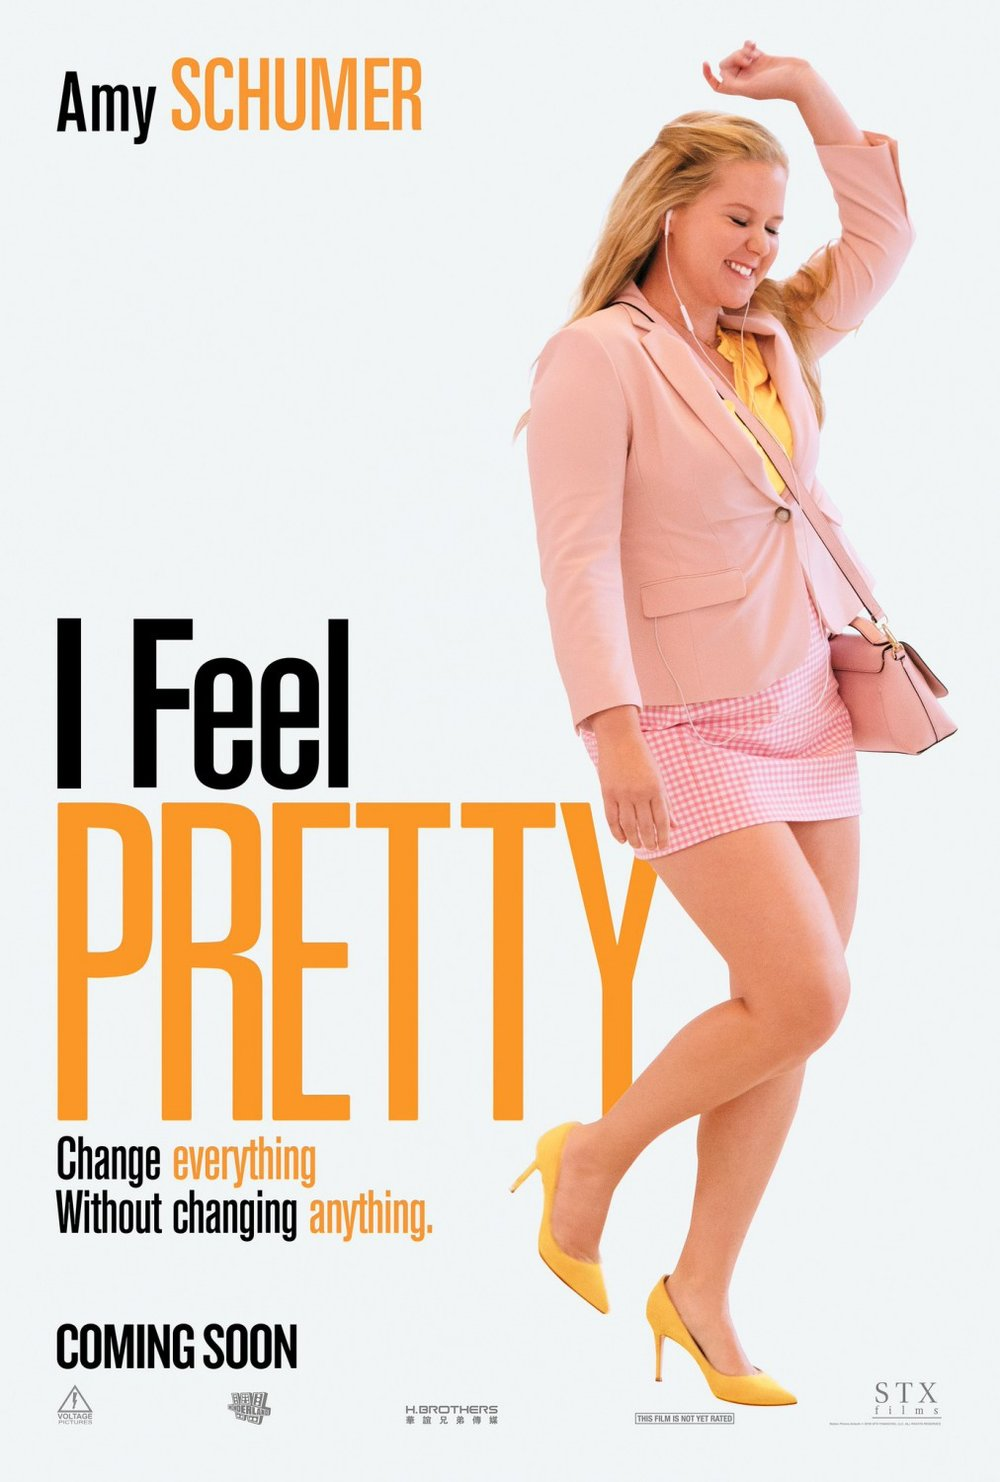 I Feel Pretty! - Visit Portland Fashion Week on Face Book for your chance to win a pair of VIP tickets for the advanced showing of this sure-to-be-a-hit comedy.Movie: I FEEL PRETTYCast: Amy Schumer, Michelle Williams, Rory Scovel, Emily Ratajkowski, Aidy Bryant, Naomi Campbell and Lauren HuttonSynopsis: in I FEEL PRETTY an ordinary woman who struggles with feelings of insecurity and inadequacy on a daily basis wakes from a fall believing she is suddenly the most beautiful and capable woman on the planet. With this newfound confidence she is empowered to live her life fearlessly and flawlessly, but what will happen when she realizes her appearance never changed?Trailer: https://www.youtube.com/watch?v=cVx9EFK3DWE